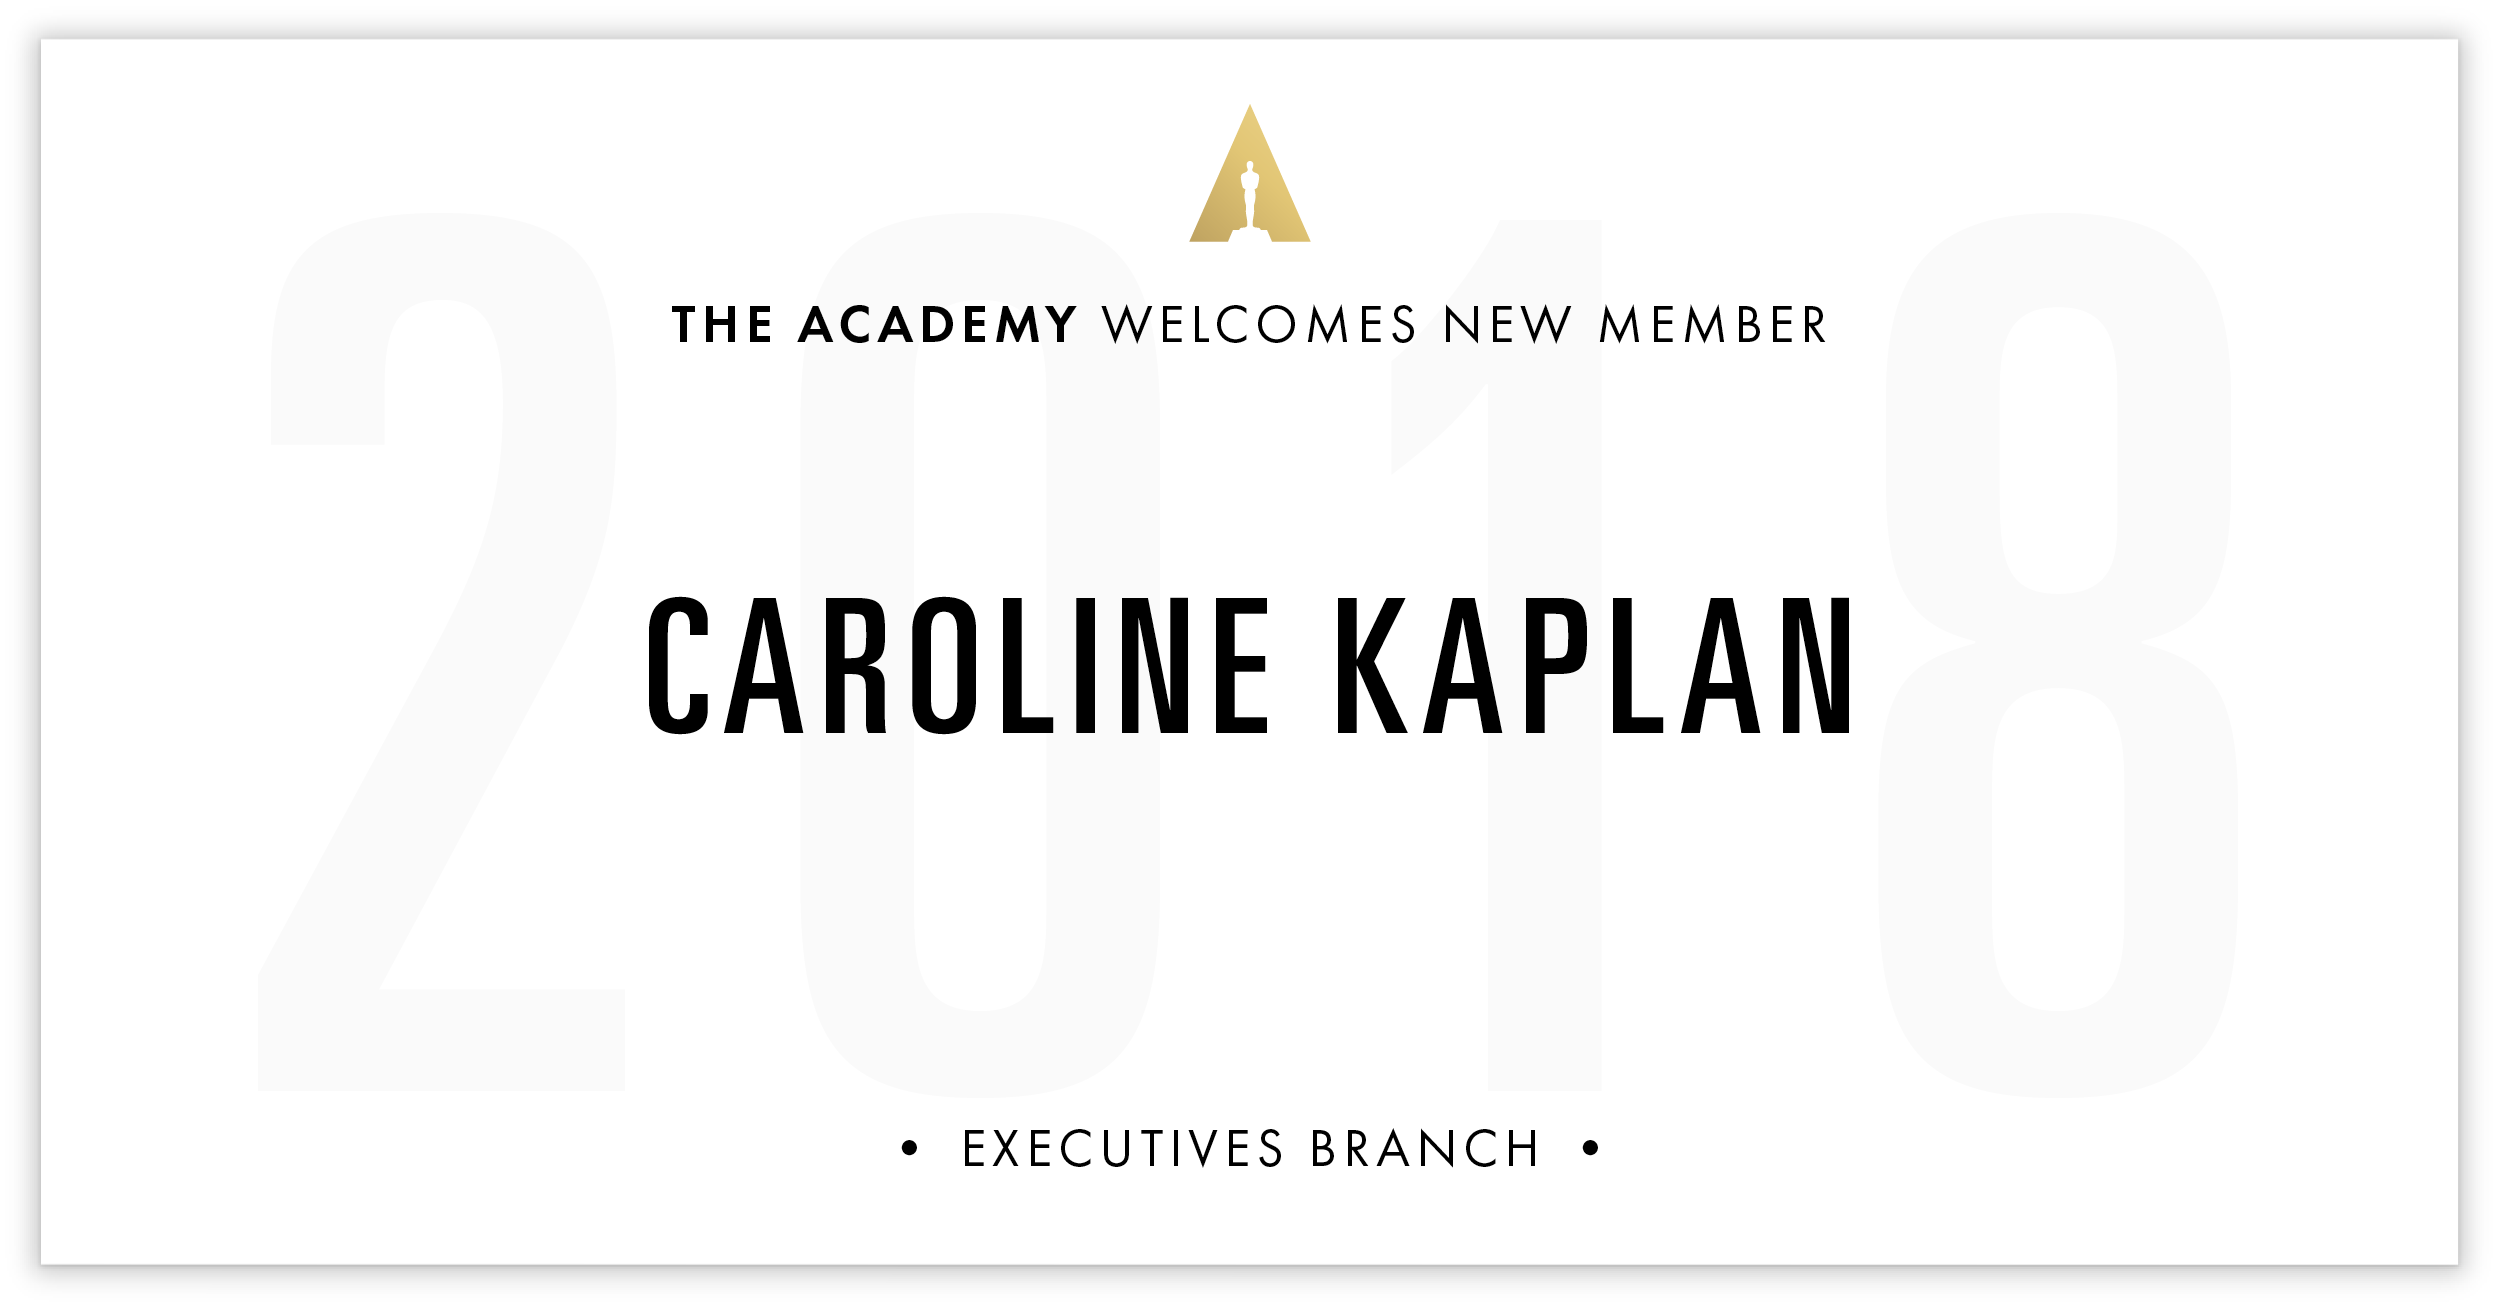 Caroline Kaplan is invited!